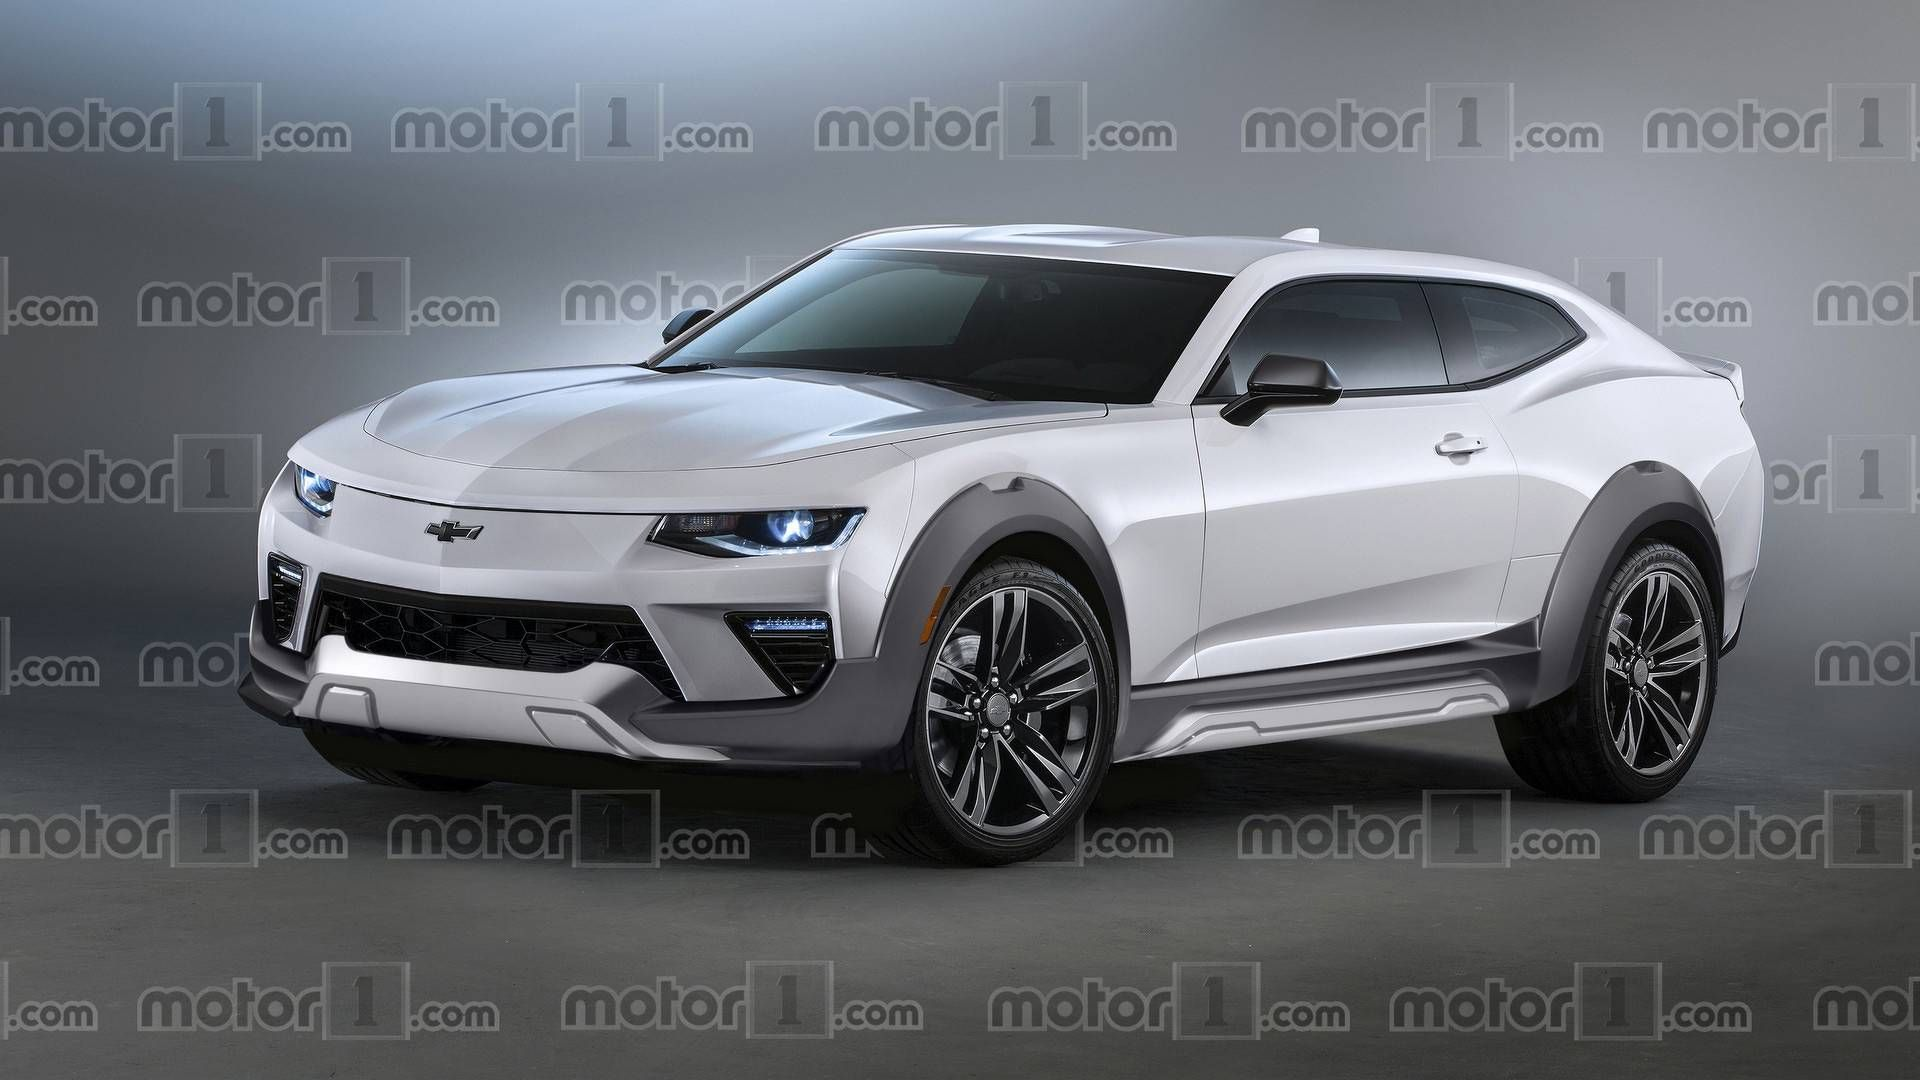 Pin By Shanti Pless On Electric Camero Chevrolet Suv Chevrolet